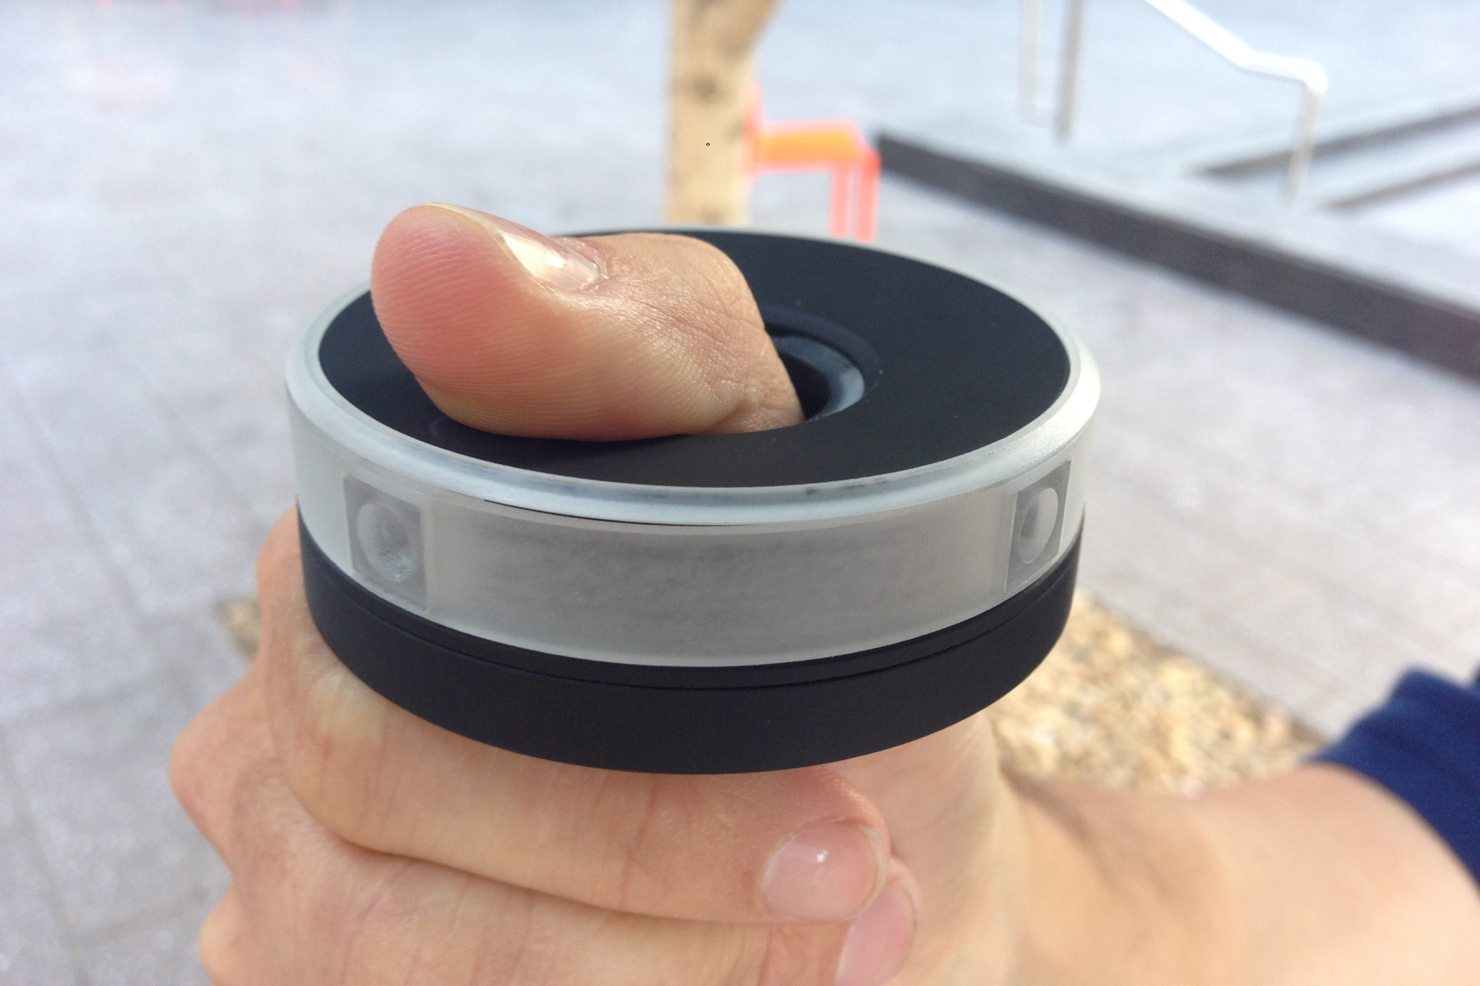 The Centr 360-degree video camera fits over the user's thumb.